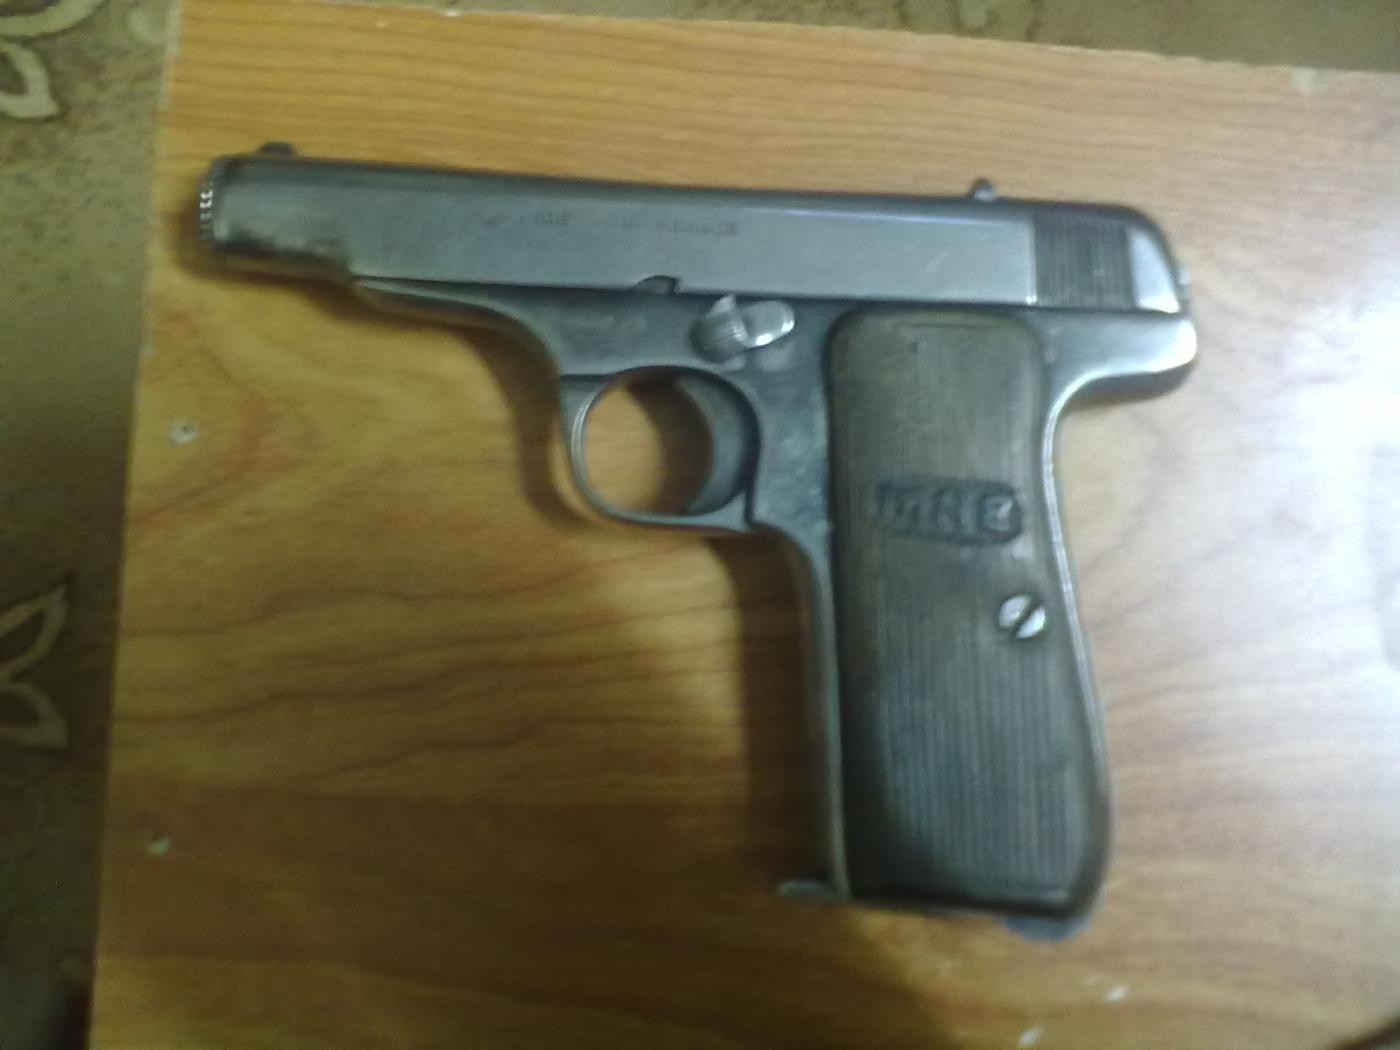 MAB Brevete Model D (made in france) | The Firearms Forum